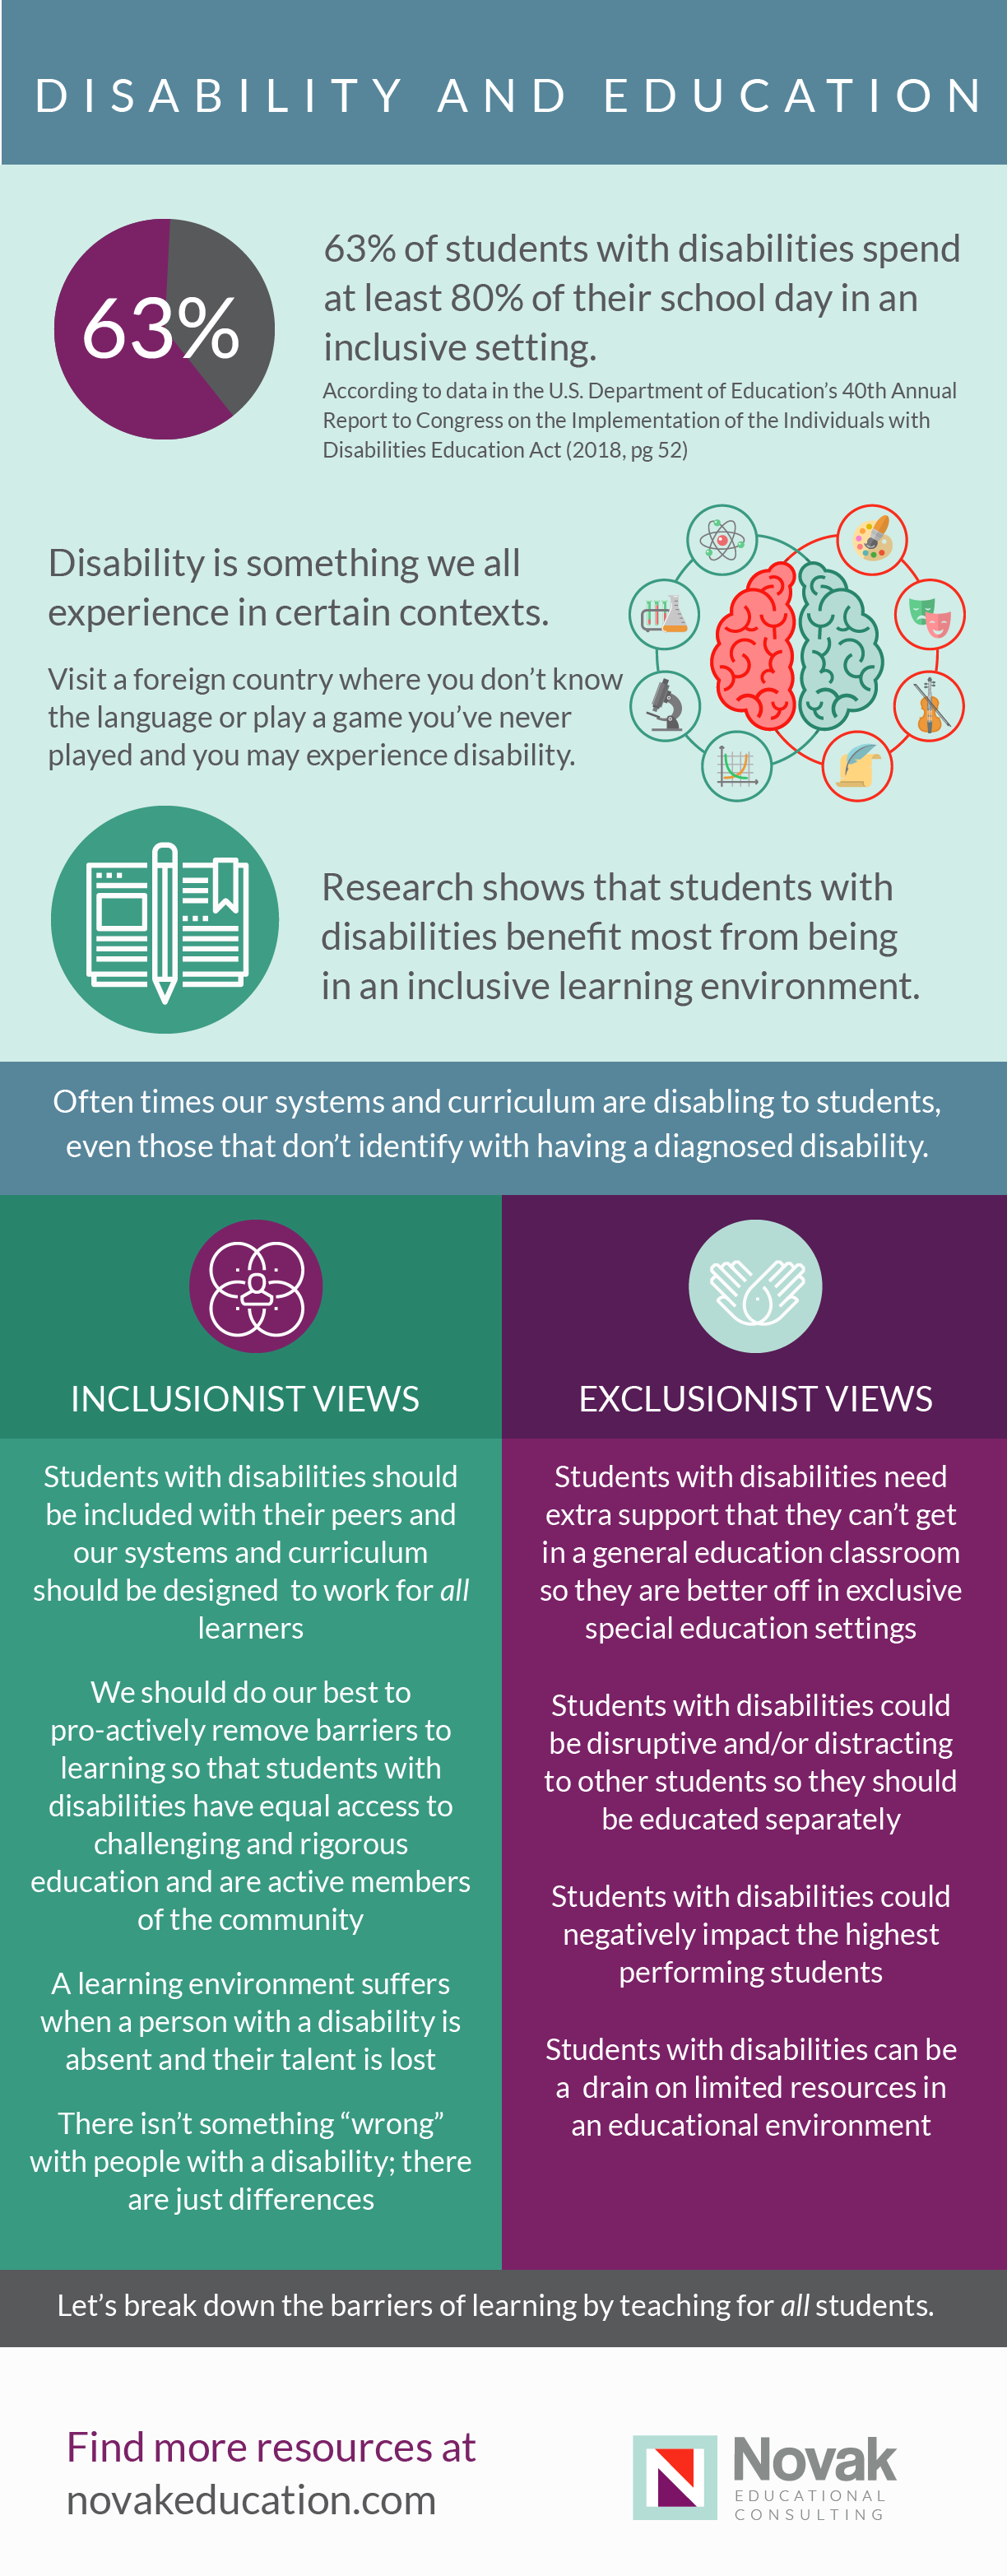 Inclusion for All: What is Disability in Education?